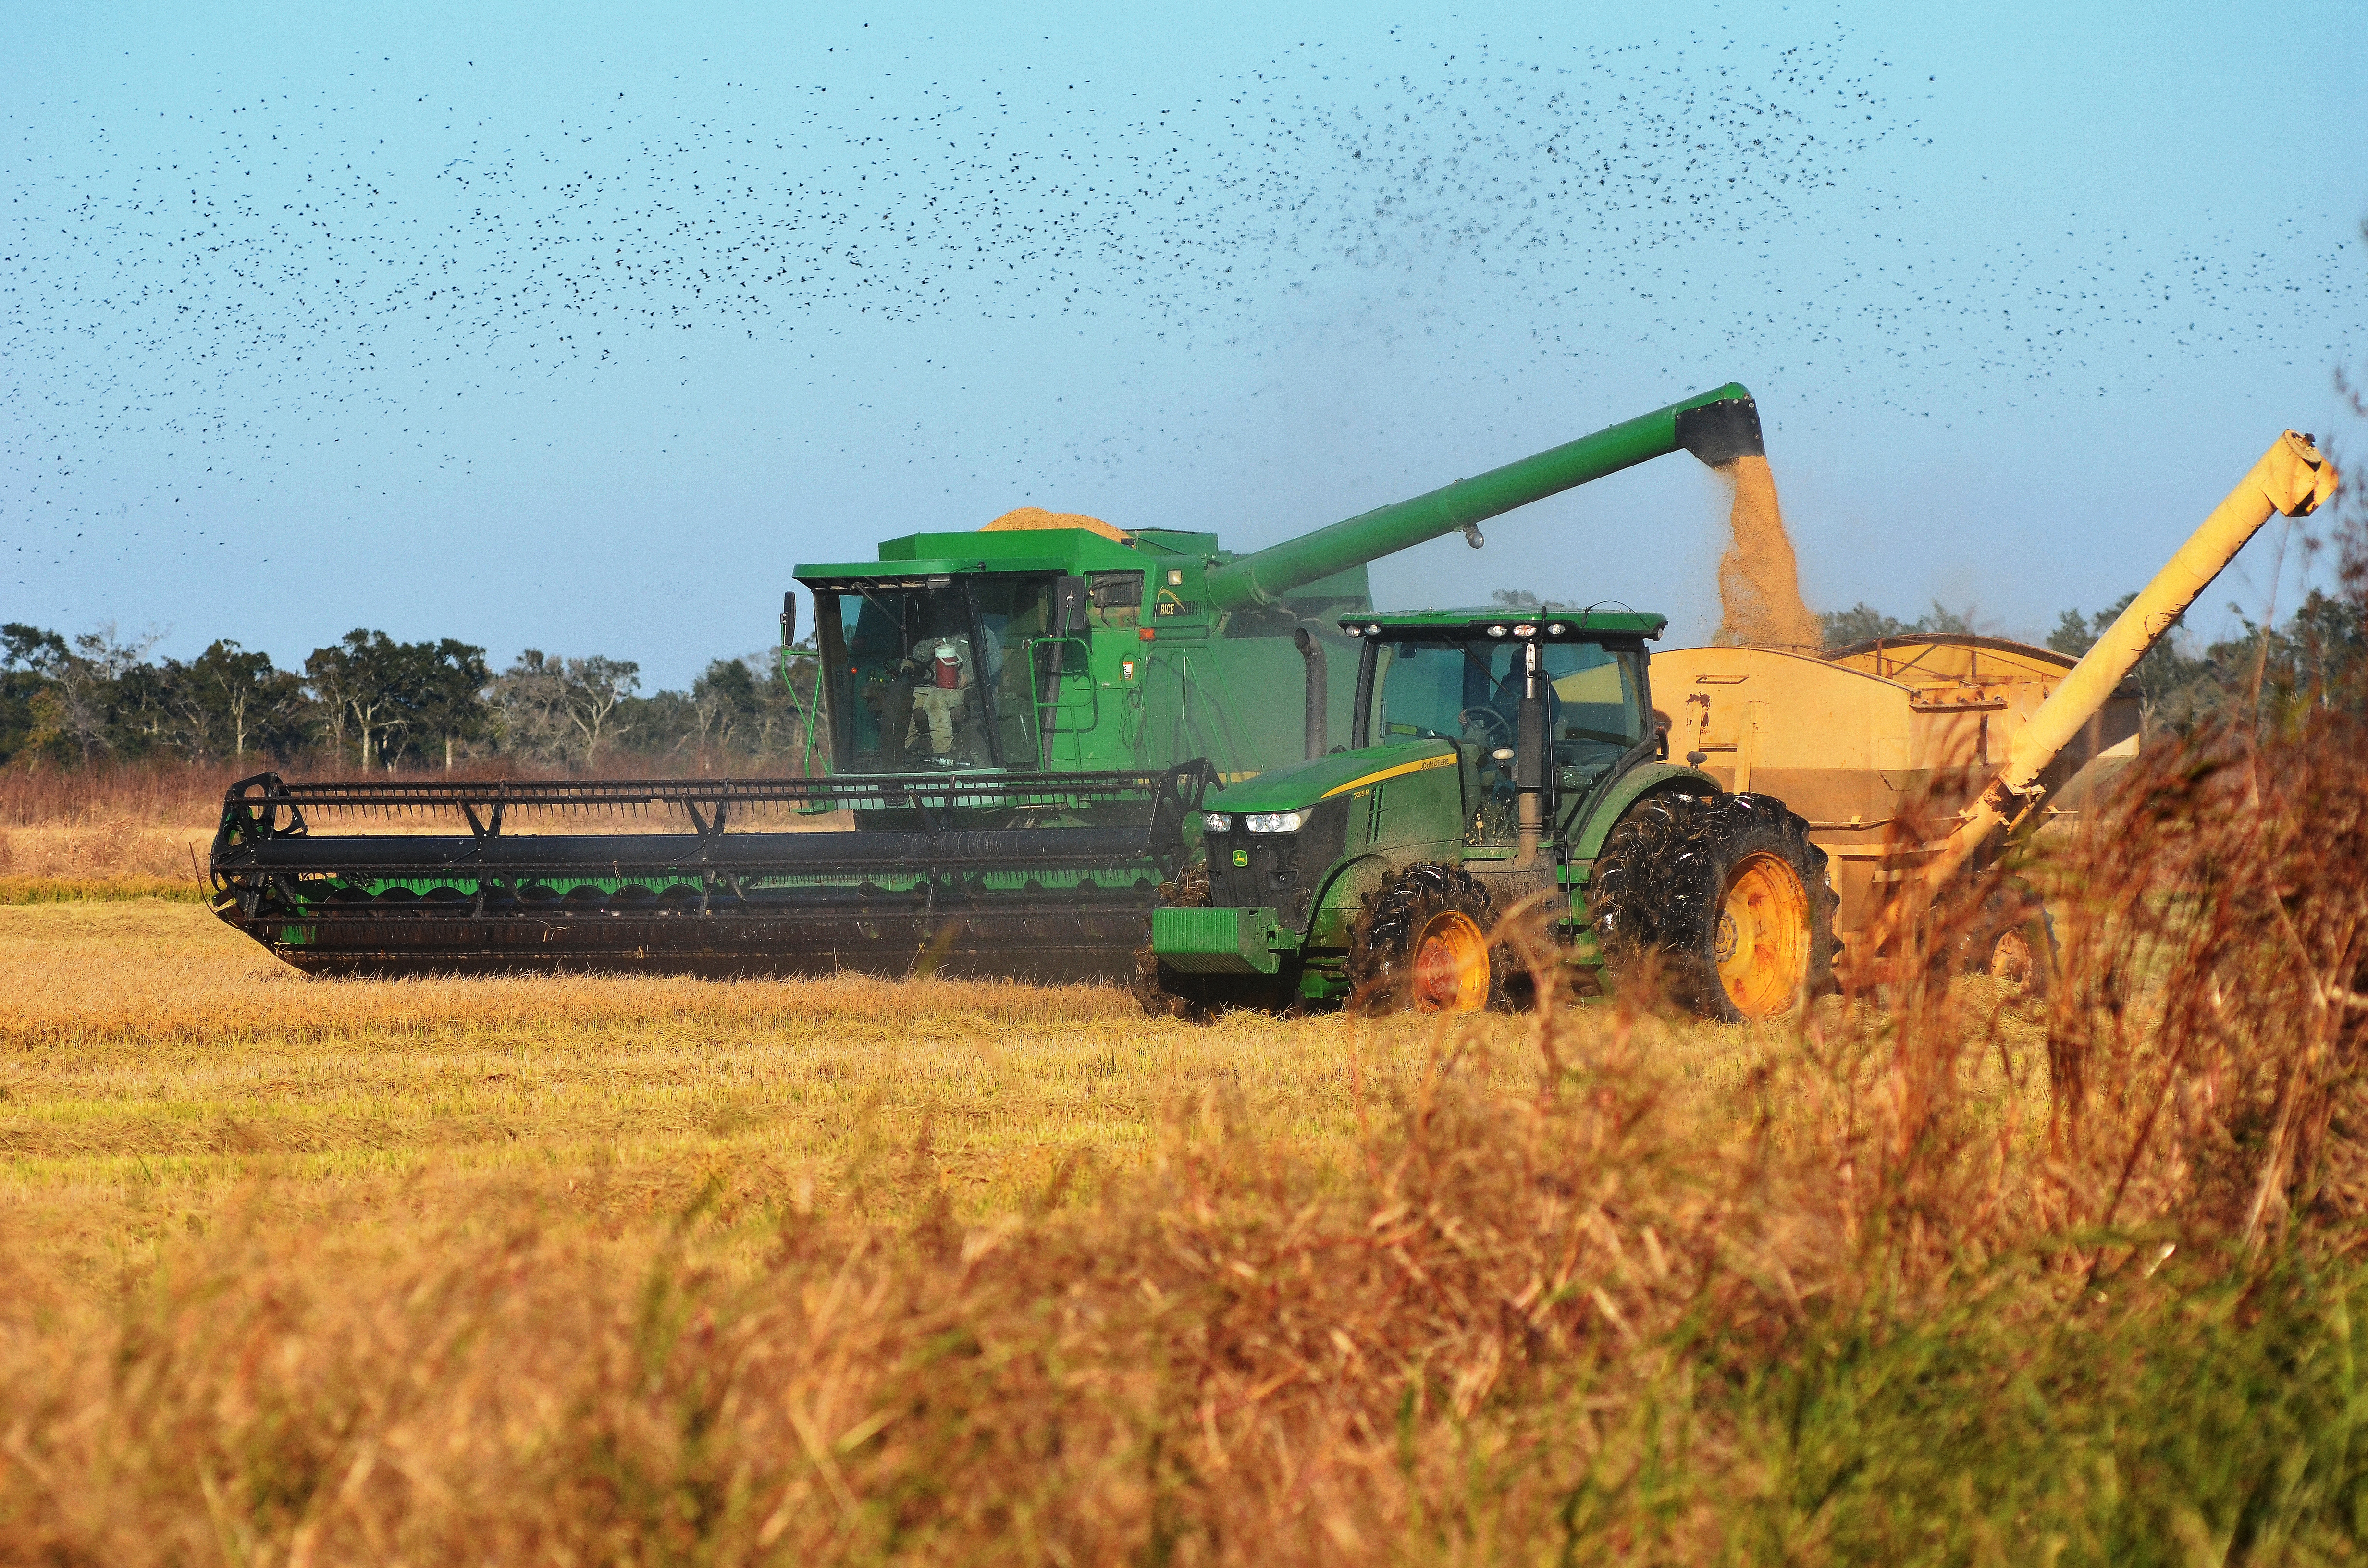 2014 Louisiana Rice Crop in Review